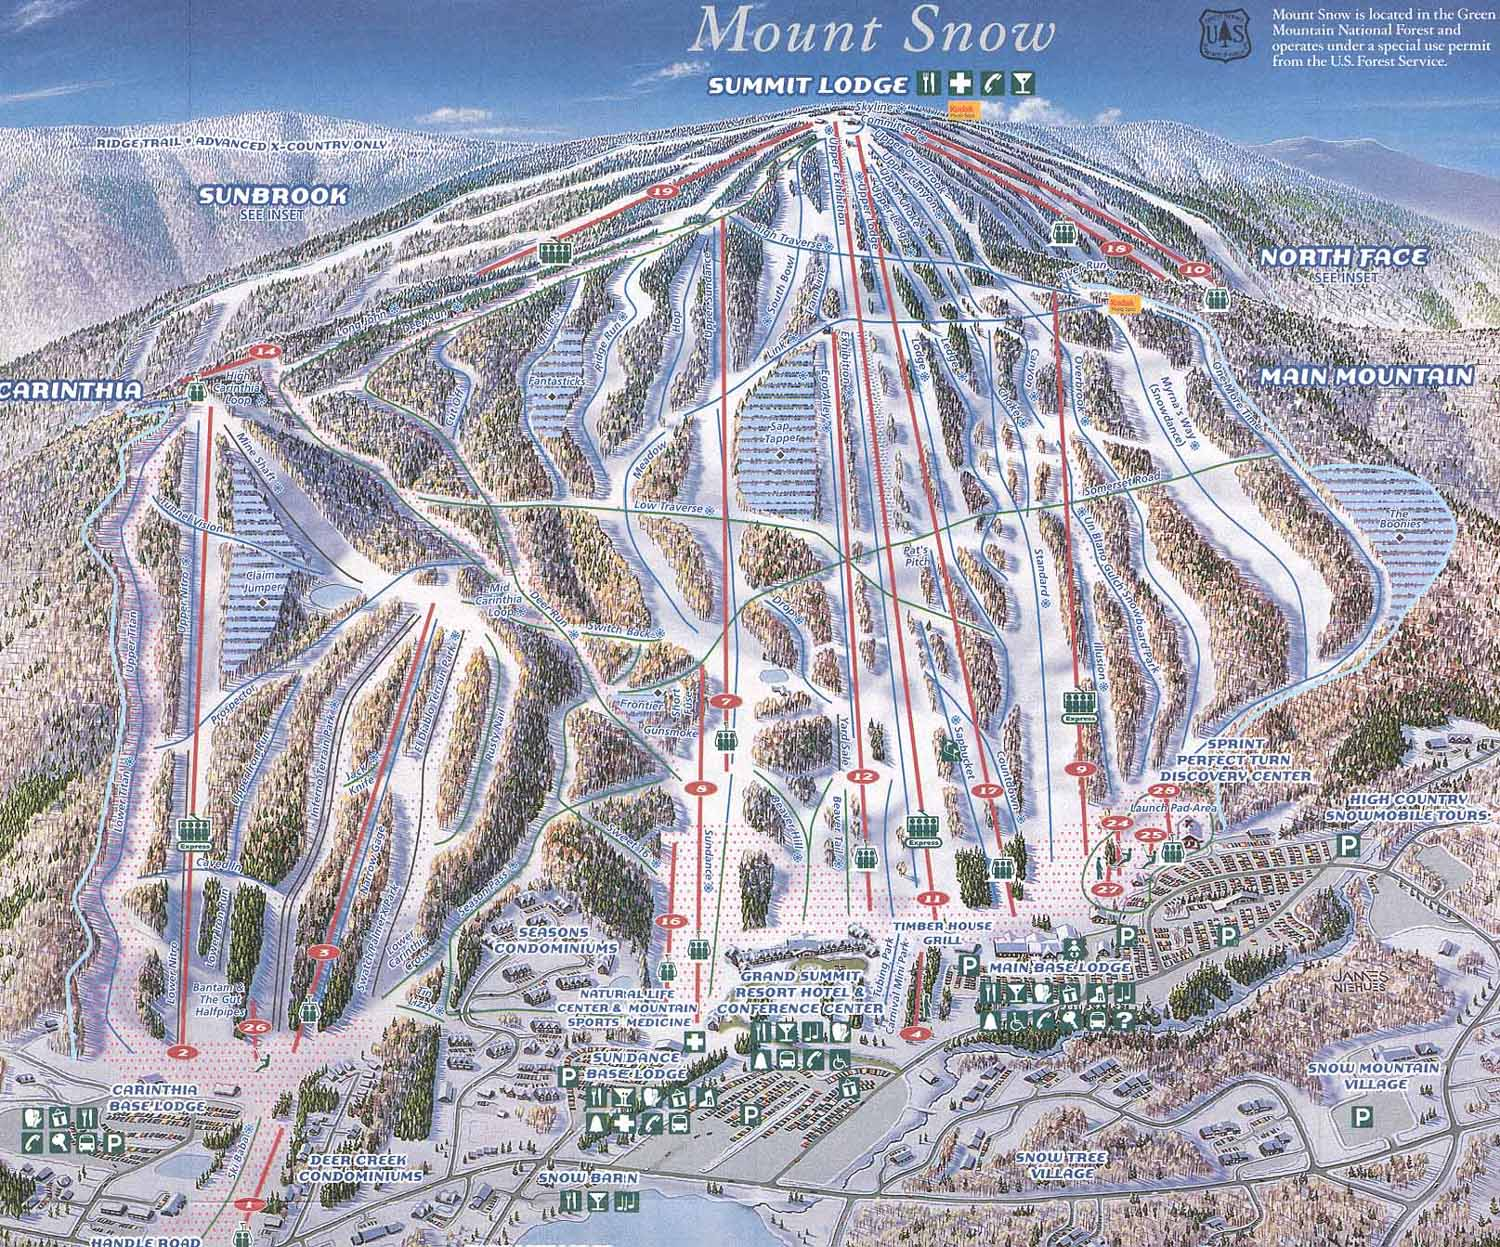 smugglers notch vt map with Mount Snow Trail Map 2001 on Mount Mansfield Vermont Trail Map together with Maps likewise Vermont Skiing Map moreover 2135081414950290903 besides Sugarbush Resort.